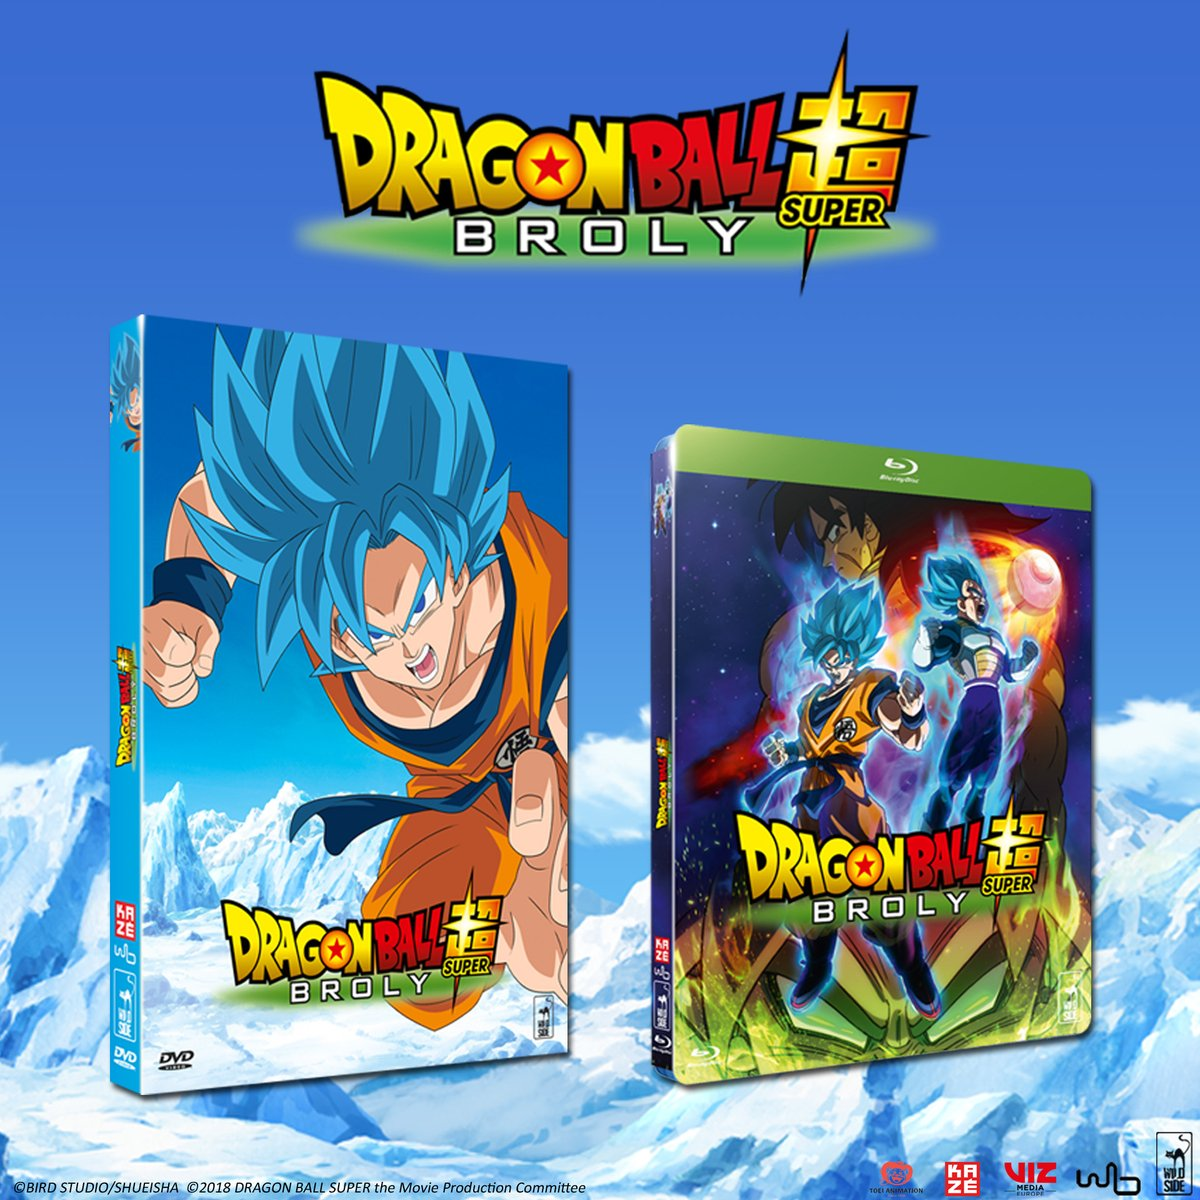 Dragon Ball Super BROLY est disponible en France en DVD et Blu-ray